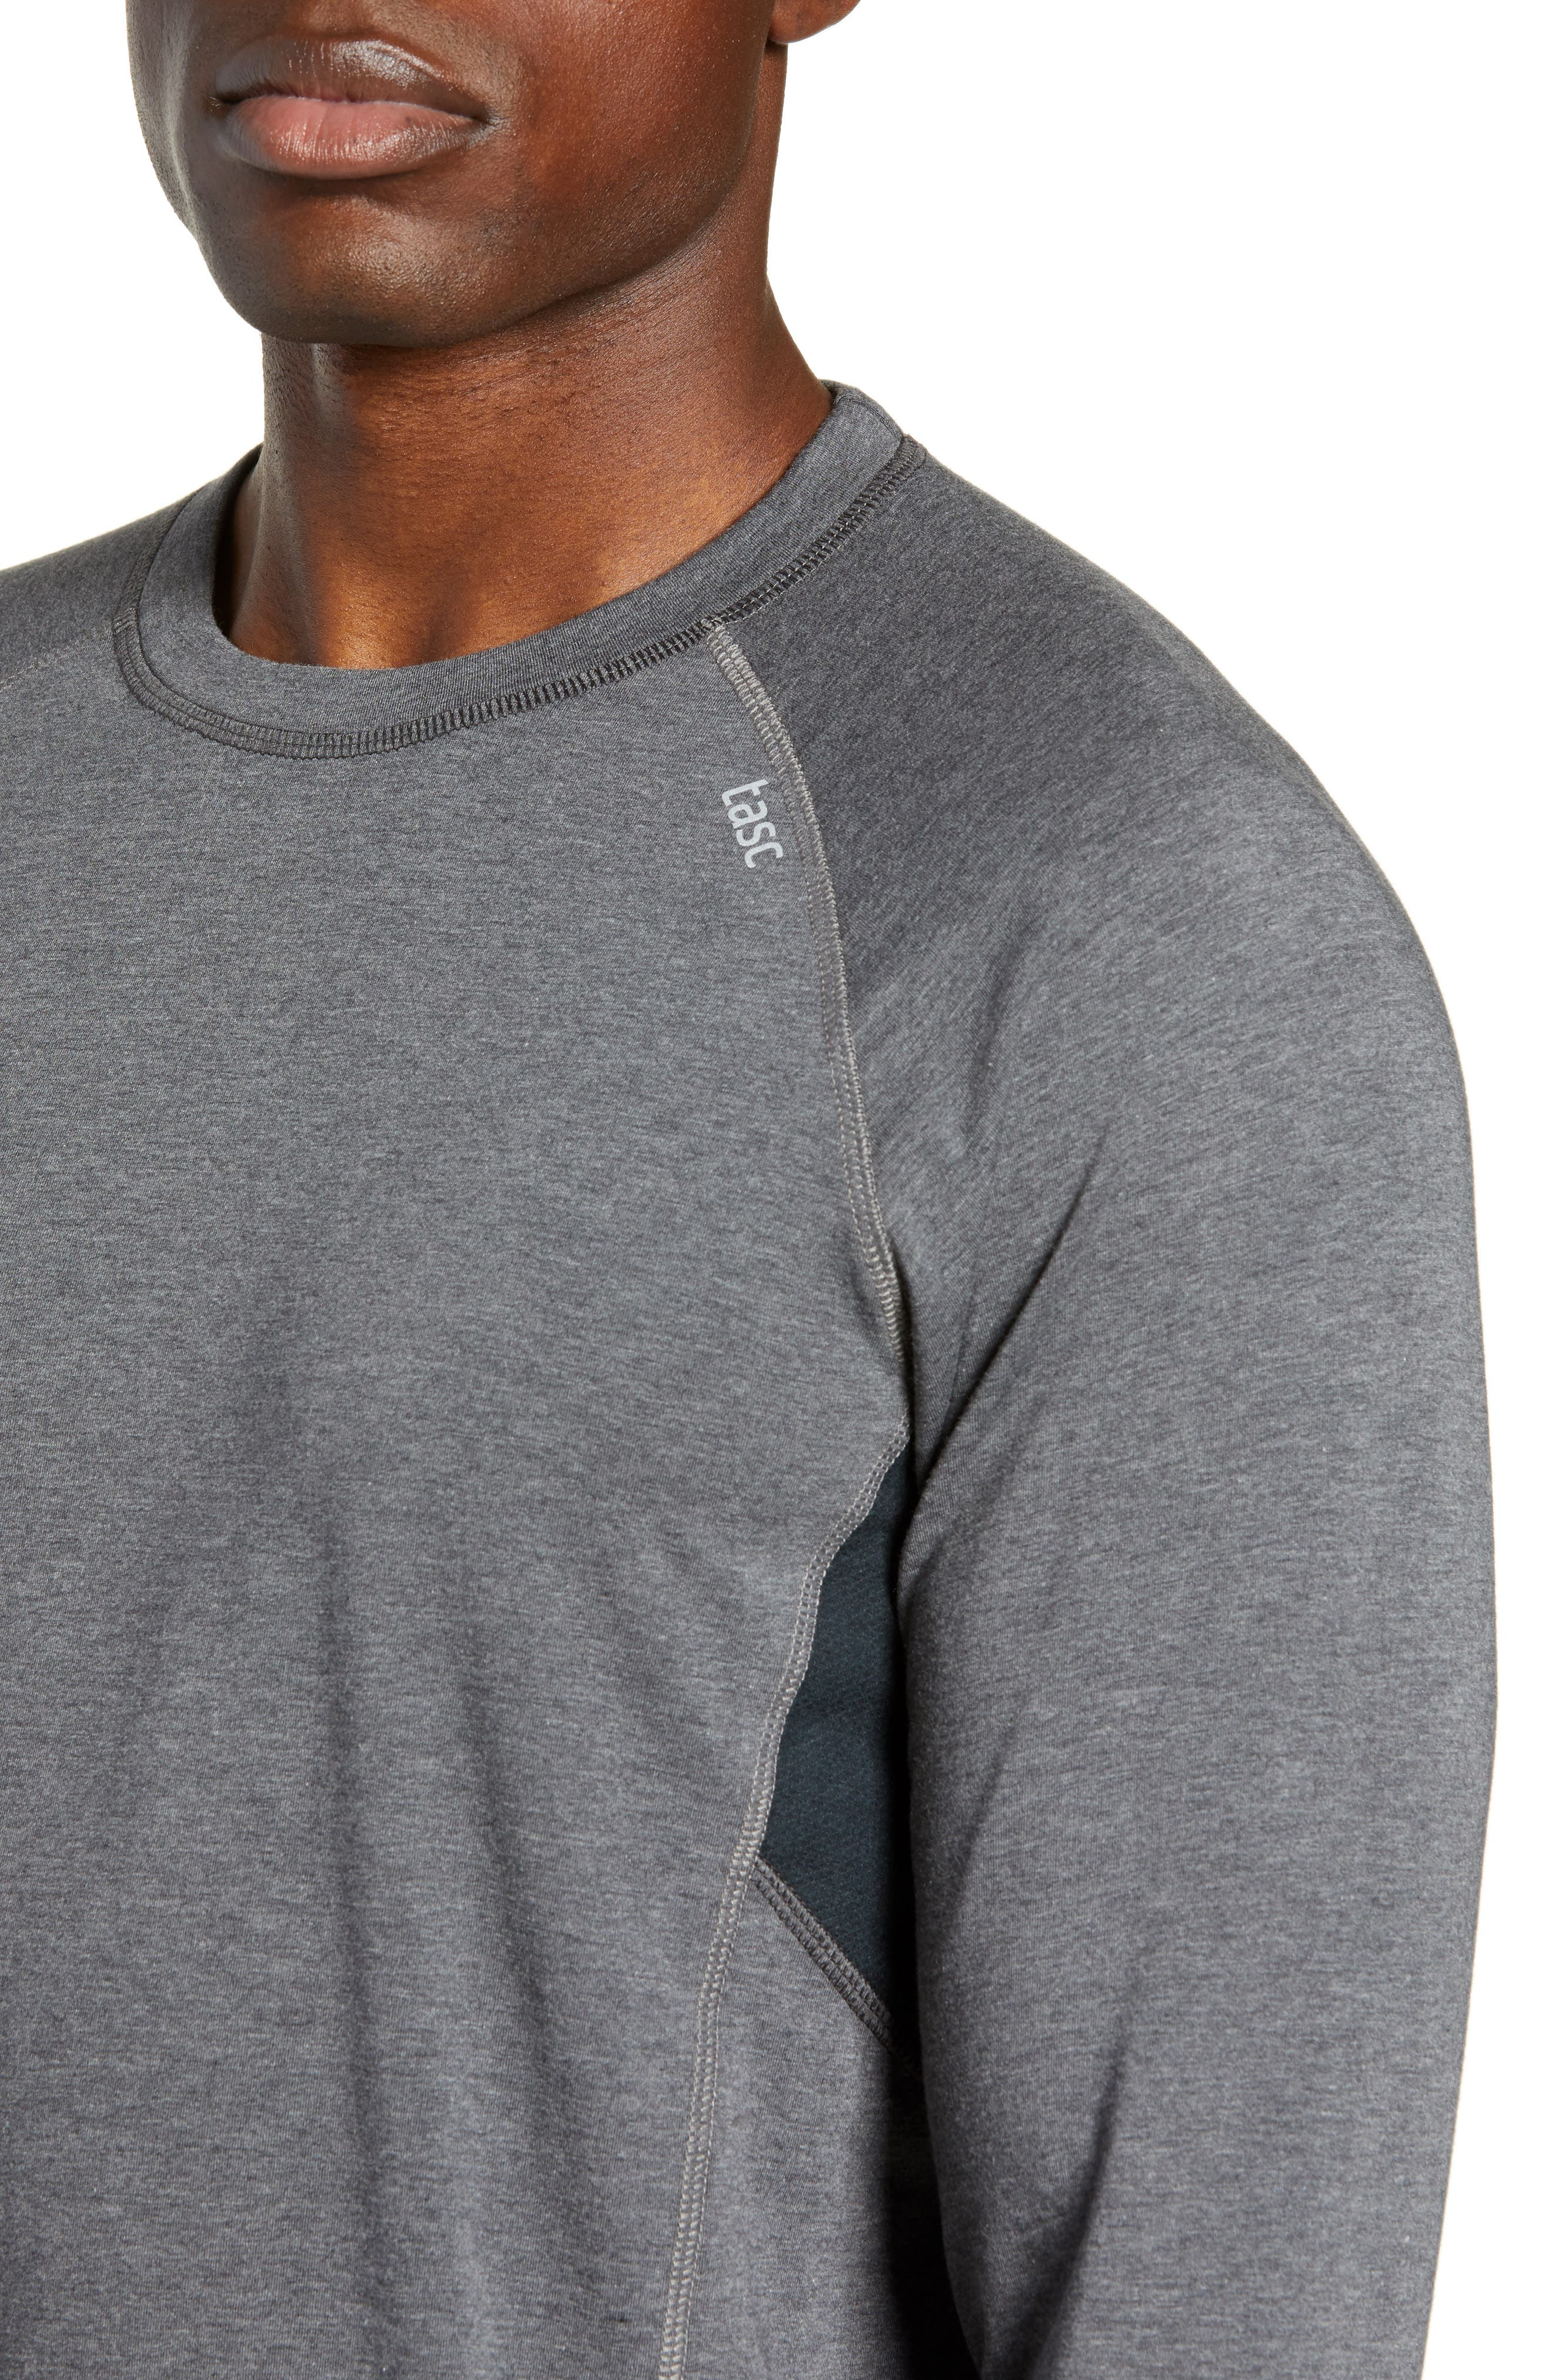 TASC PERFORMANCE, Charge II Long Sleeve Shirt, Alternate thumbnail 4, color, BLACK HEATHER